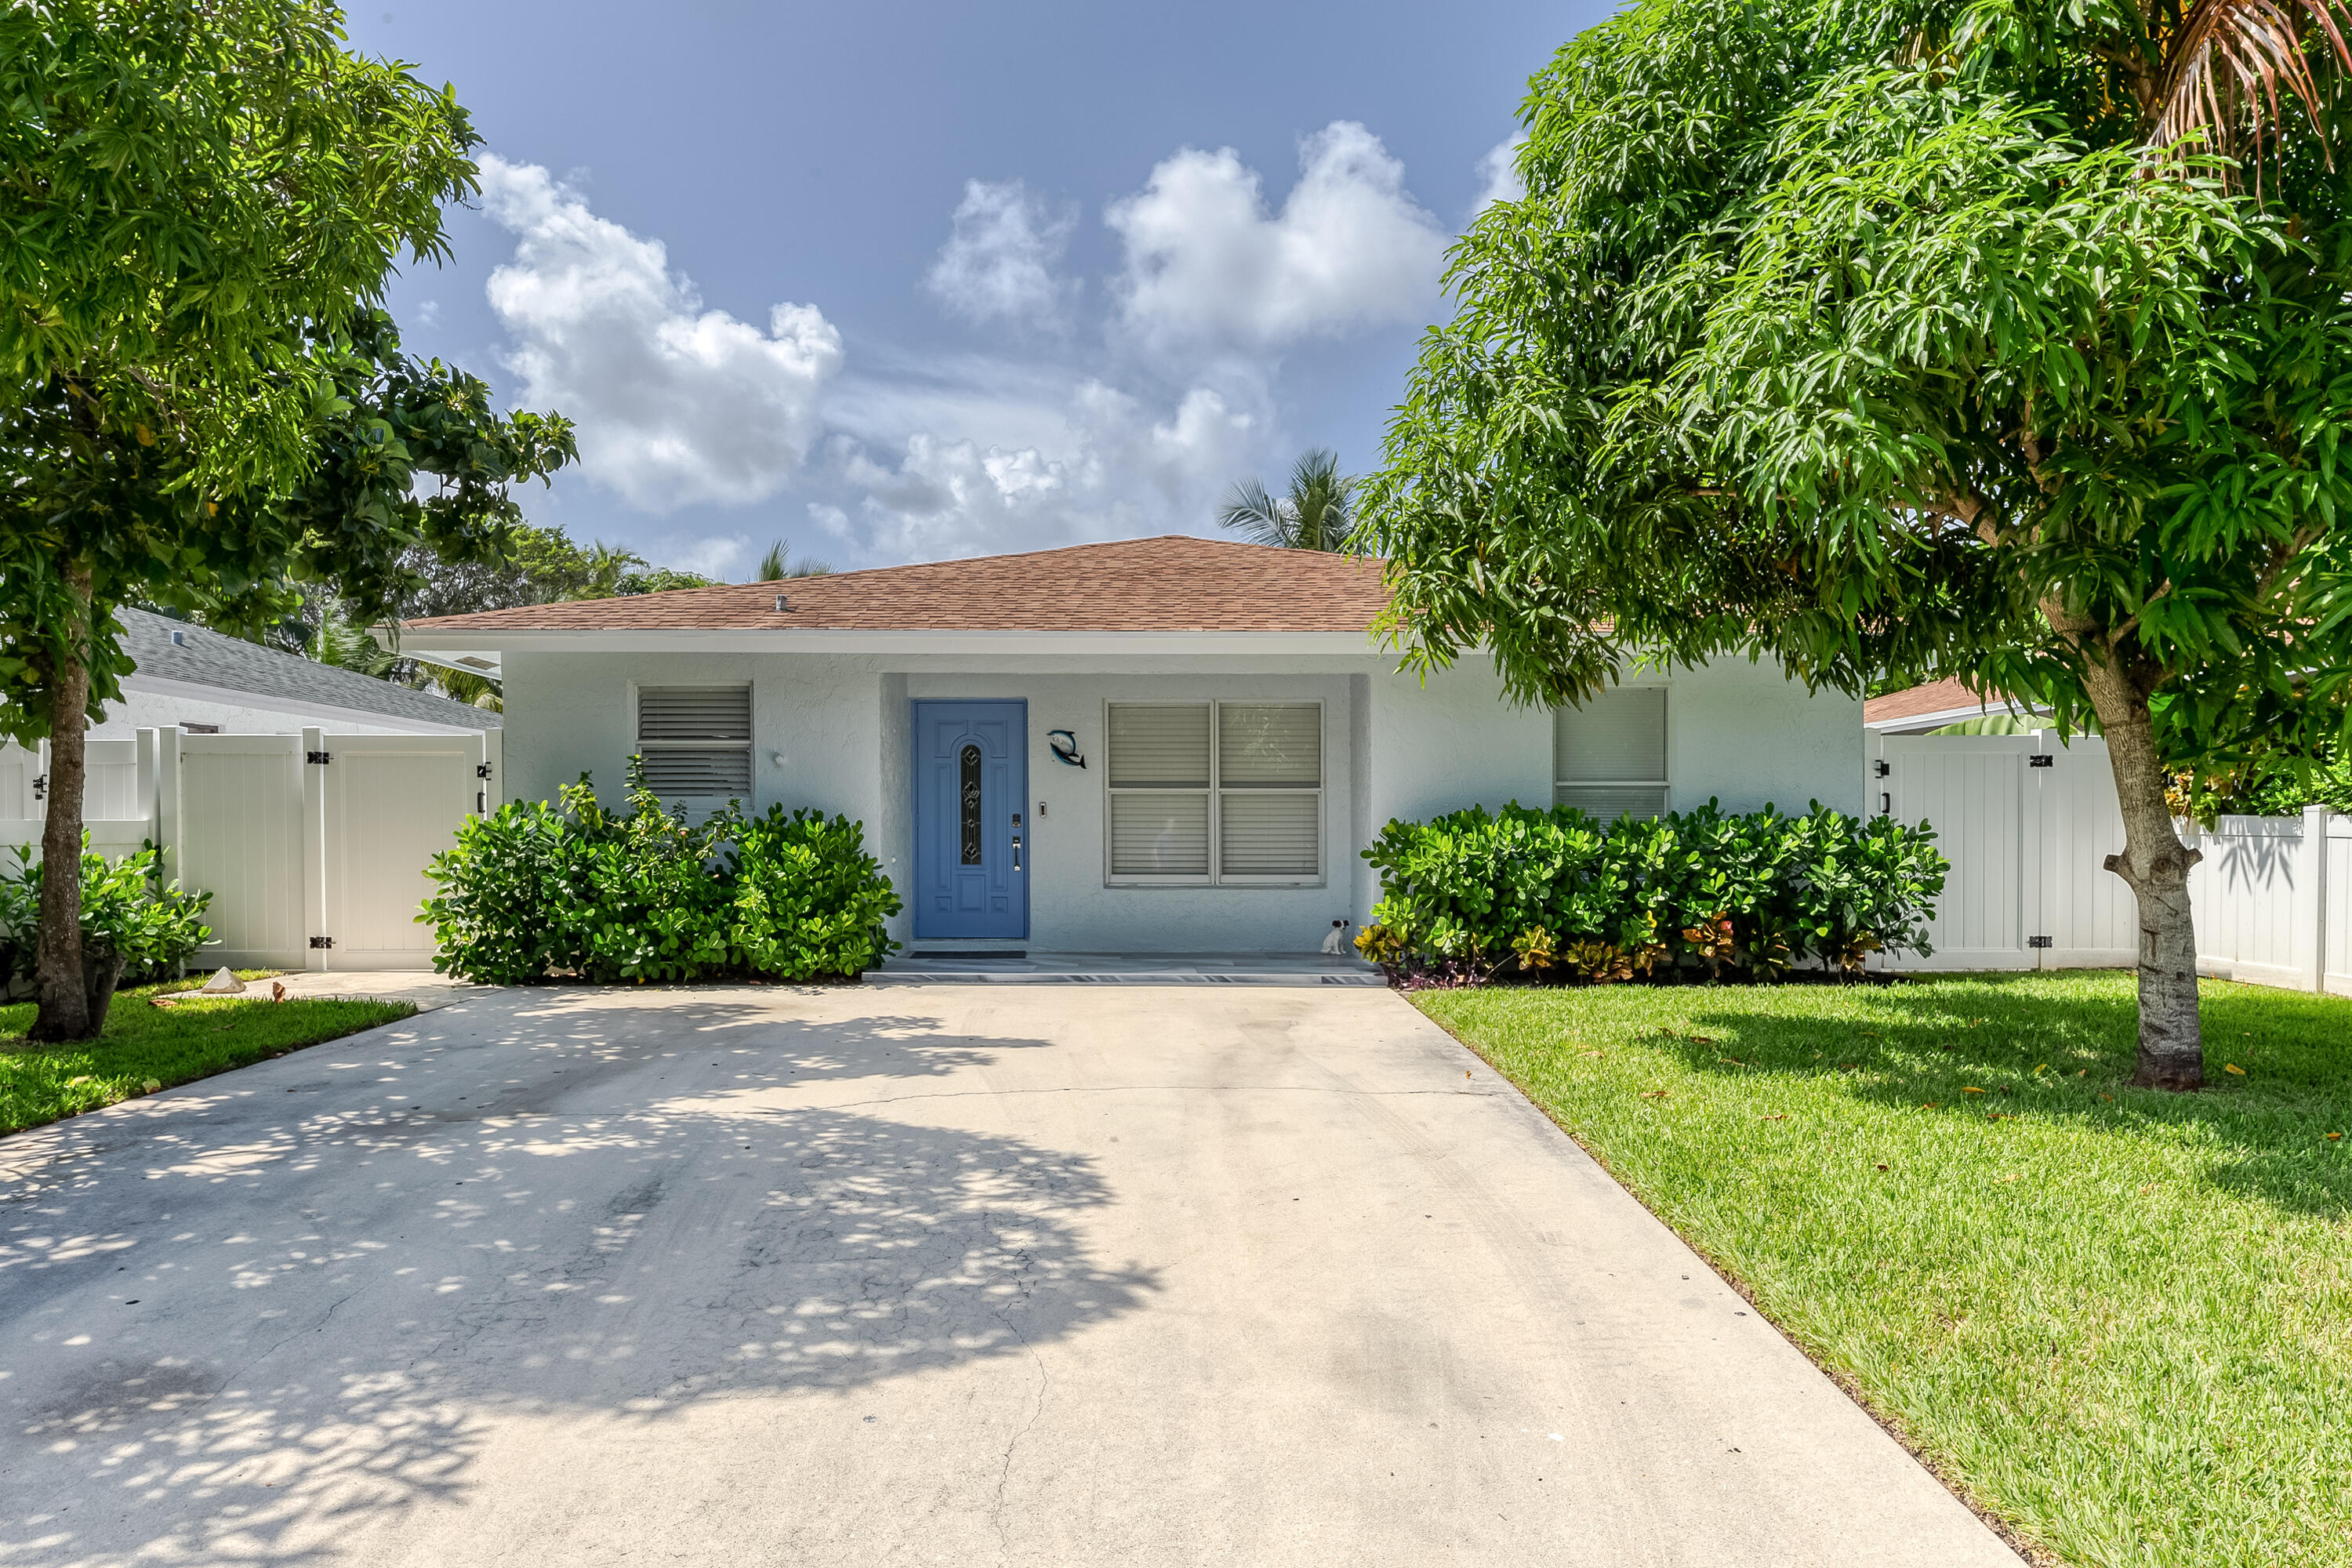 312 1st Avenue, Delray Beach, Florida 33444, 3 Bedrooms Bedrooms, ,2 BathroomsBathrooms,Single Family Detached,For Sale,1st,RX-10750913